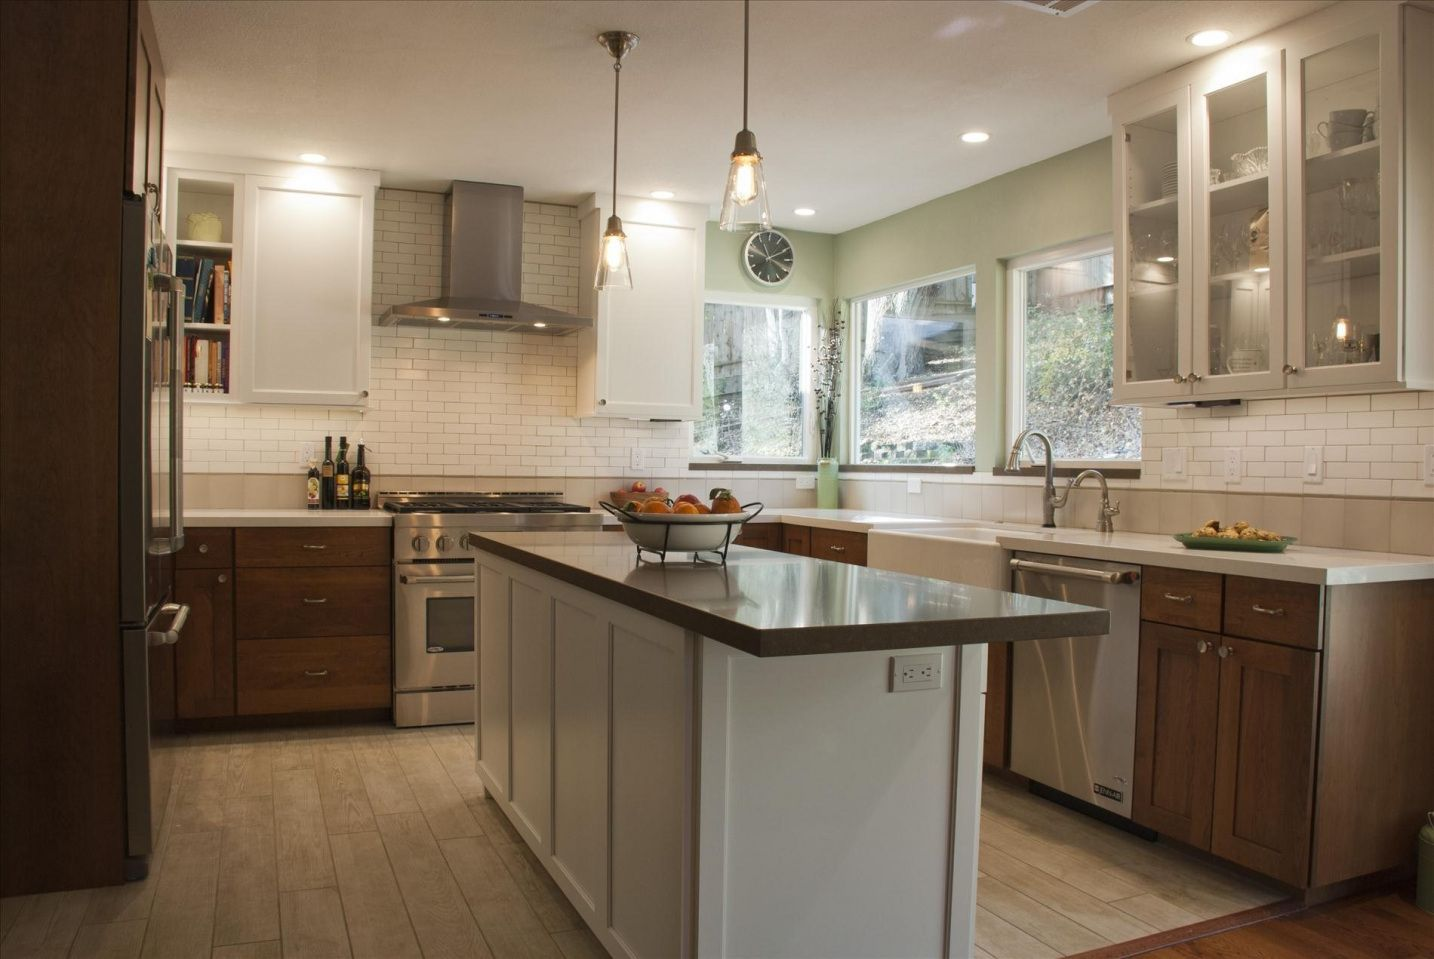 50 lowes kitchen cabinets clearance design ideas for small kitchens check more at http